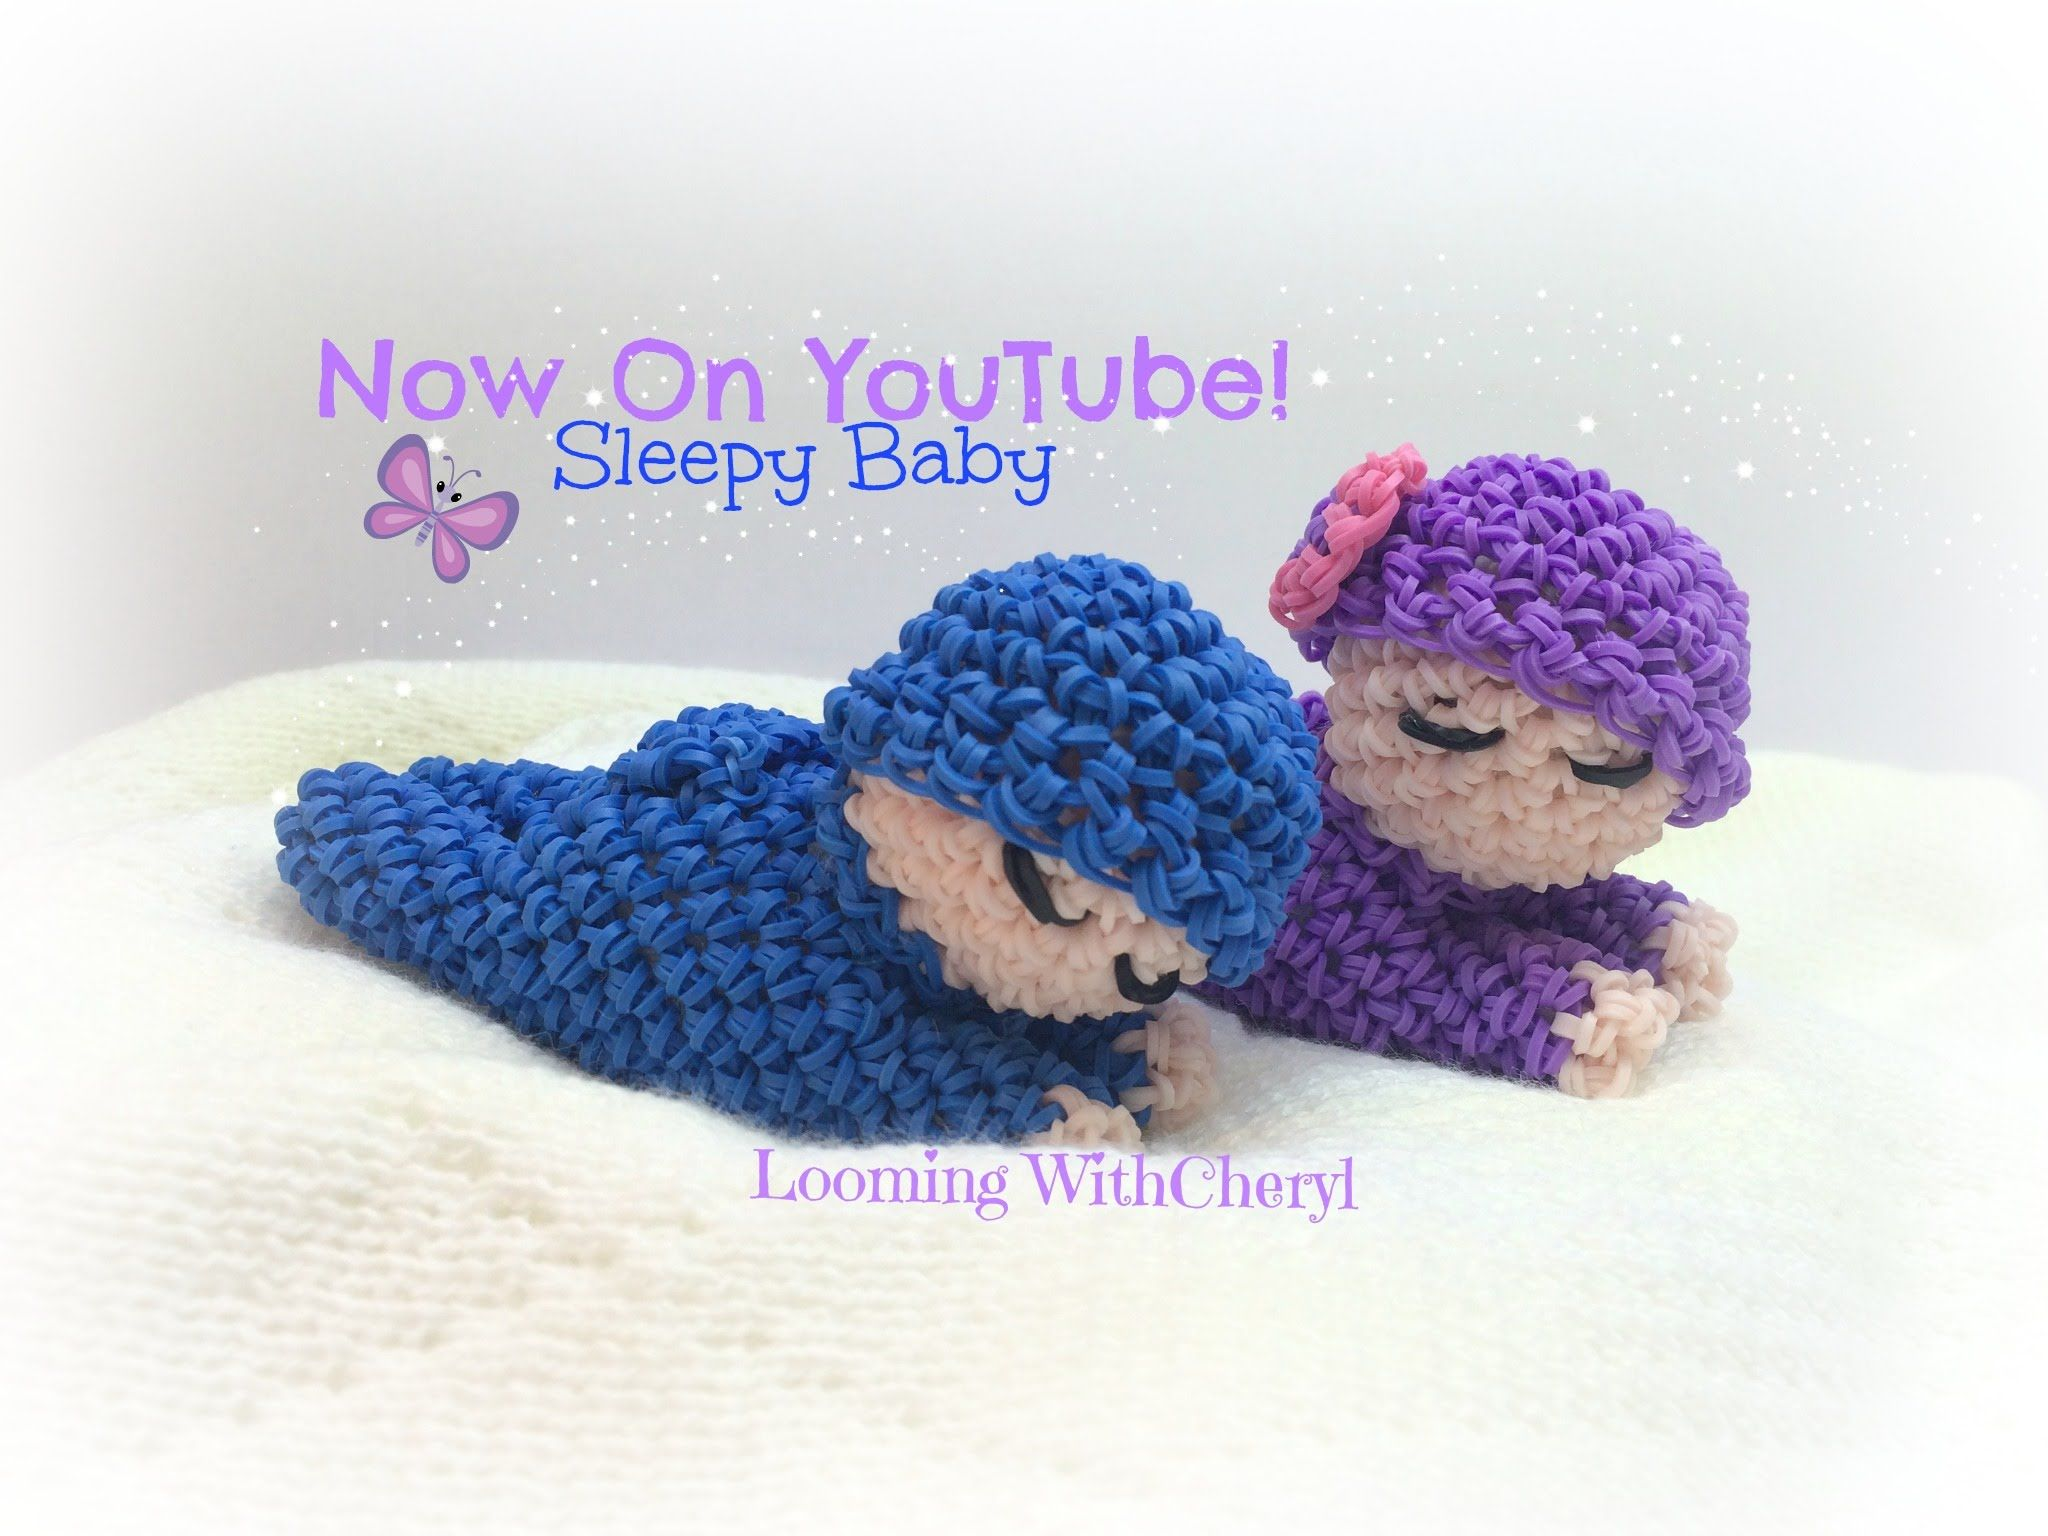 Amigurumi Loom Patterns : Rainbow loom sleepy baby doll loomigurumi amigurumi hook only детка